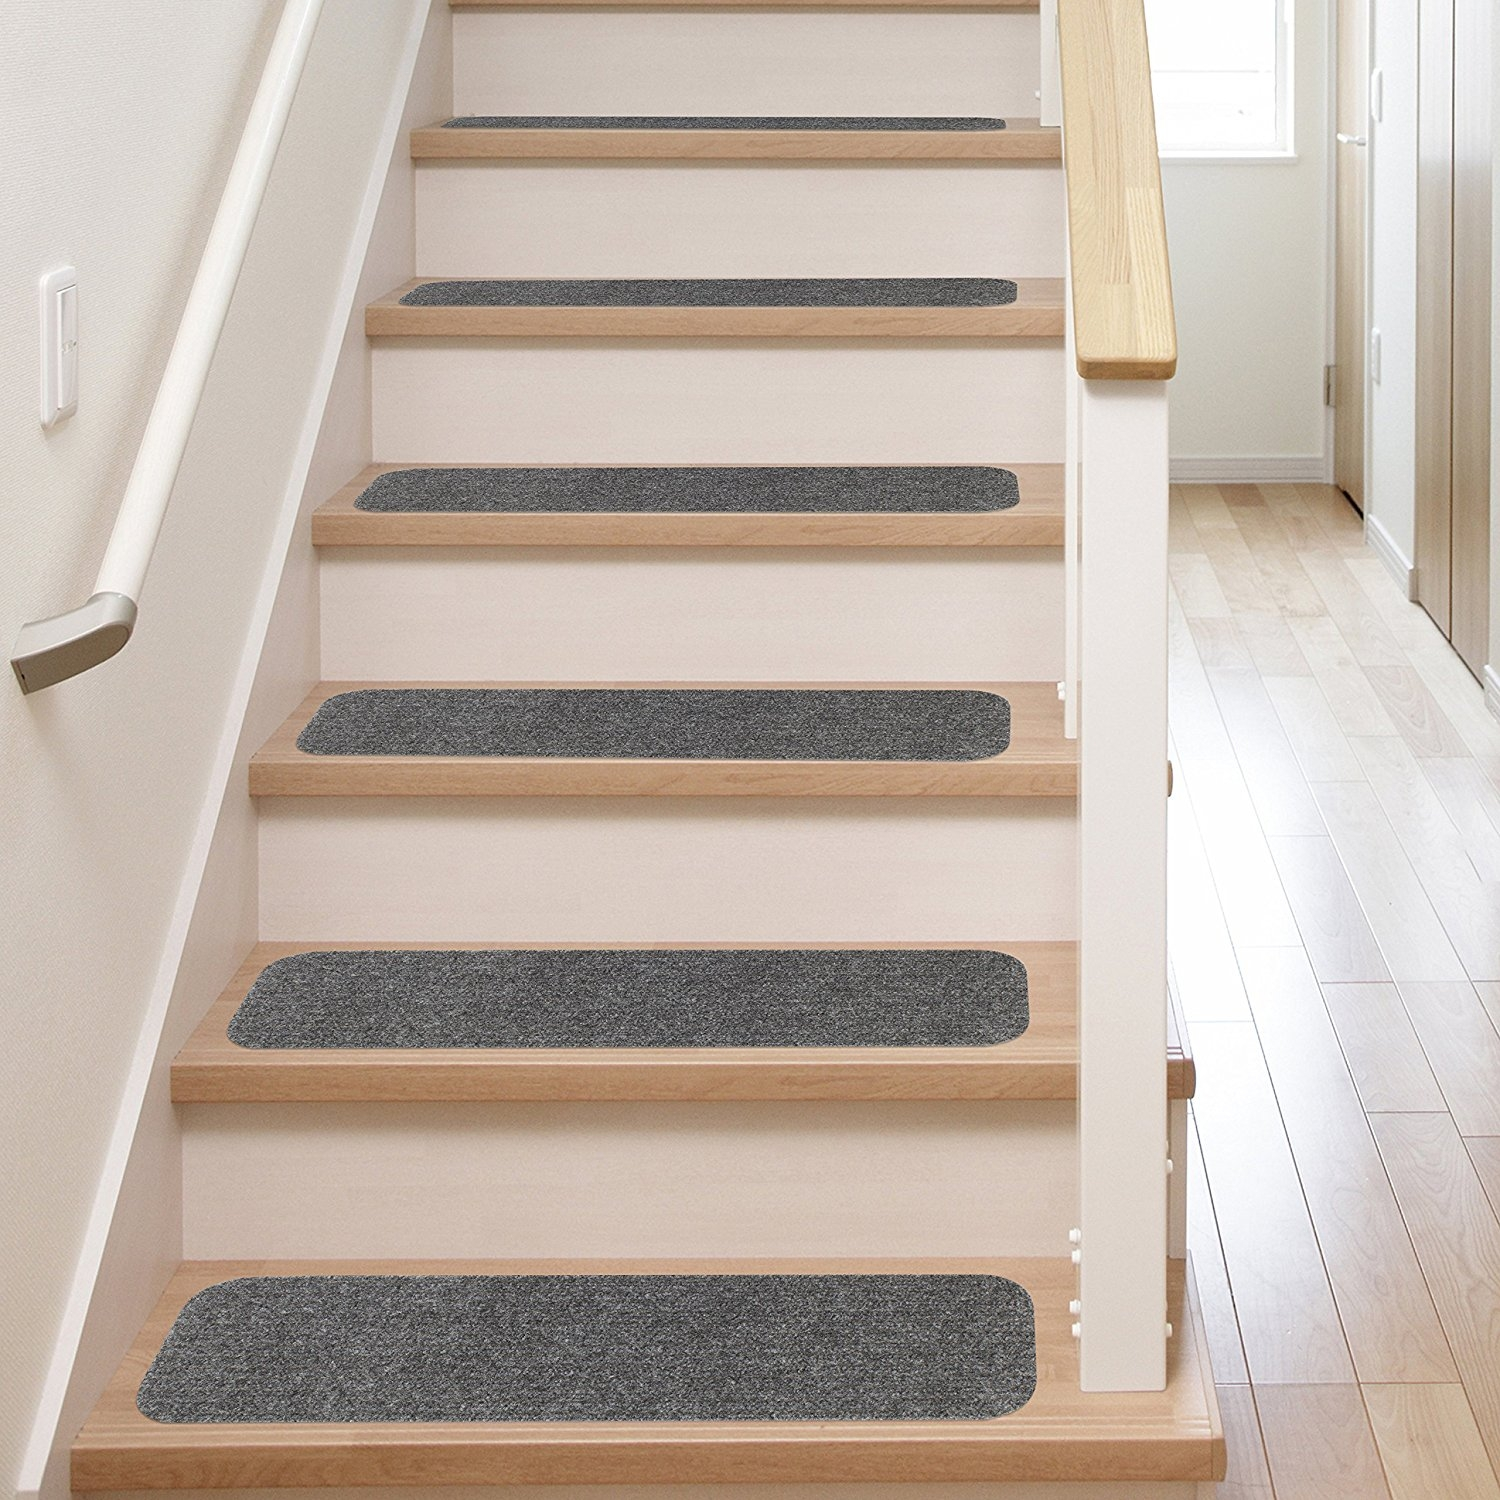 13 Stair Treads Non Slip Carpet Pads Easy Tape Installation For Stair Protectors Wooden Stairs (#1 of 20)